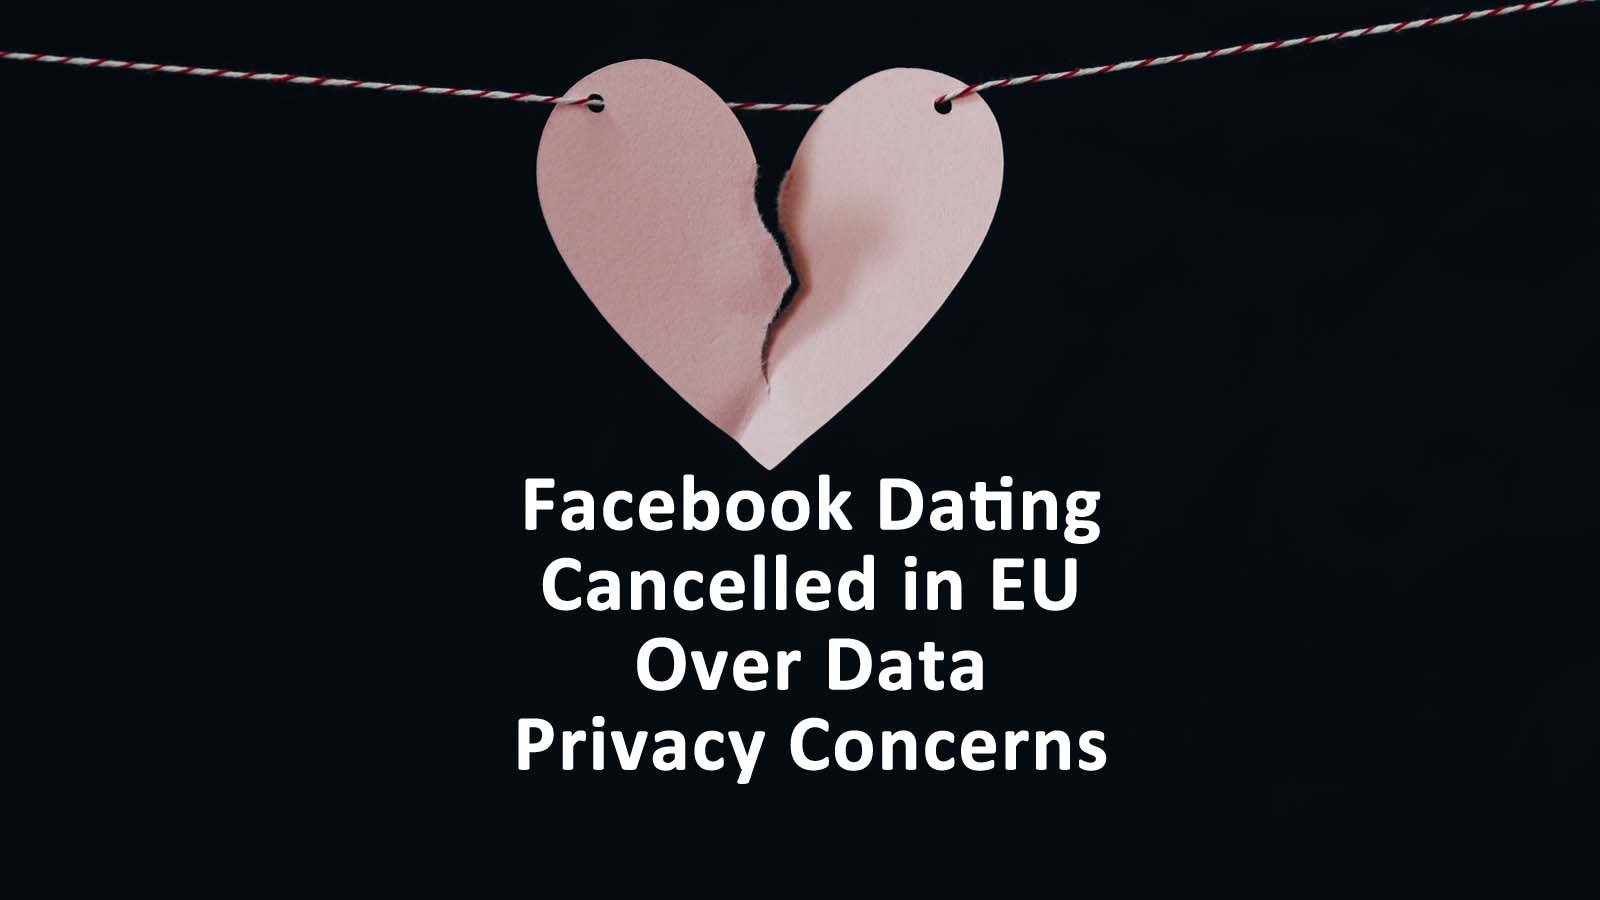 Facebook Dating EU Canceled